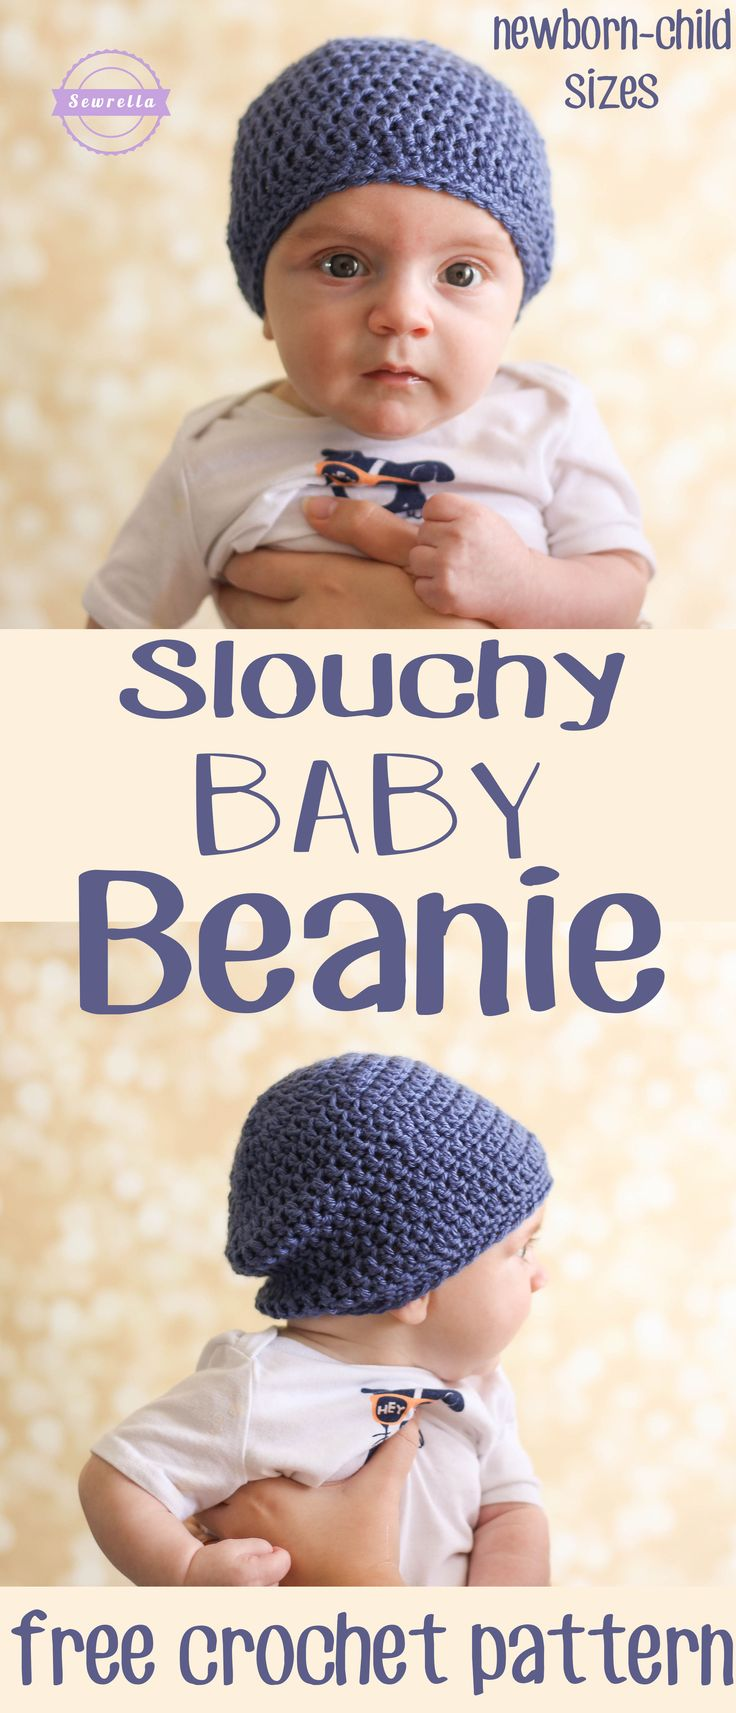 Slouchy Baby Beanie Hat | Sizes newborn - child | Free Crochet Pattern from…